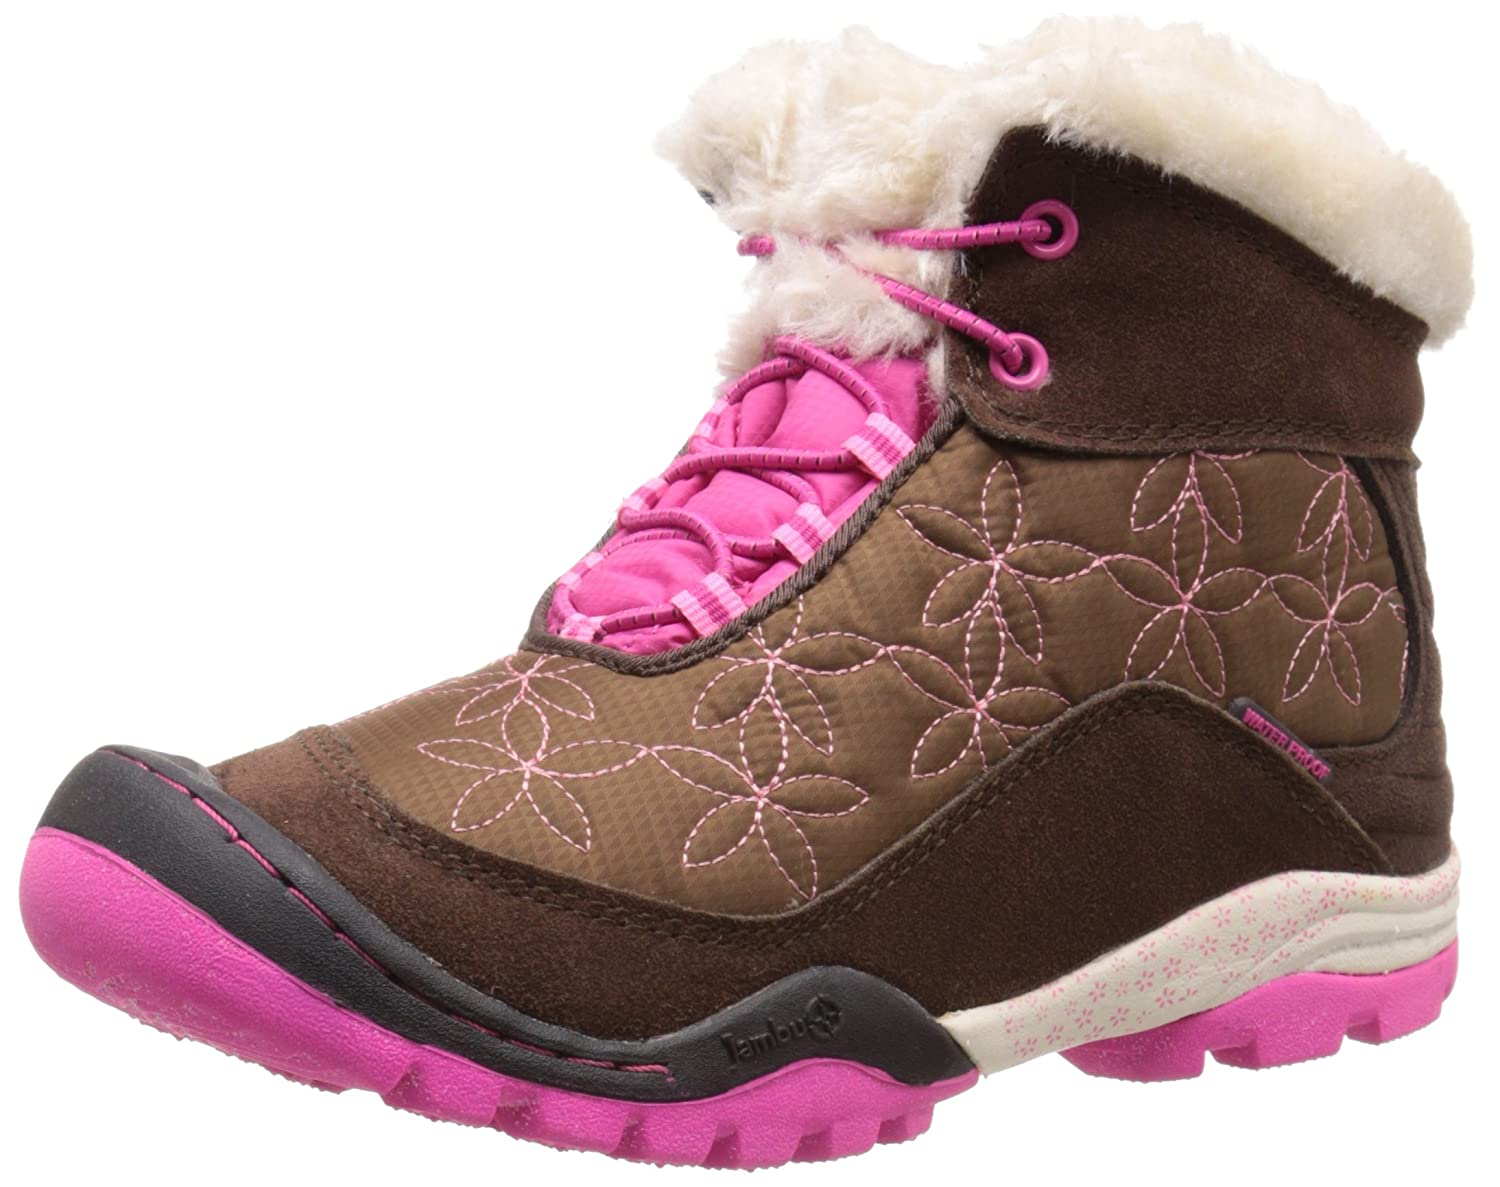 JambuKD Magnolia Mid Waterproof Boot (Little Kid/Big Kid) Brown/Fuchsia 11 M US Little Kid Magnolia Mid Waterproof - K